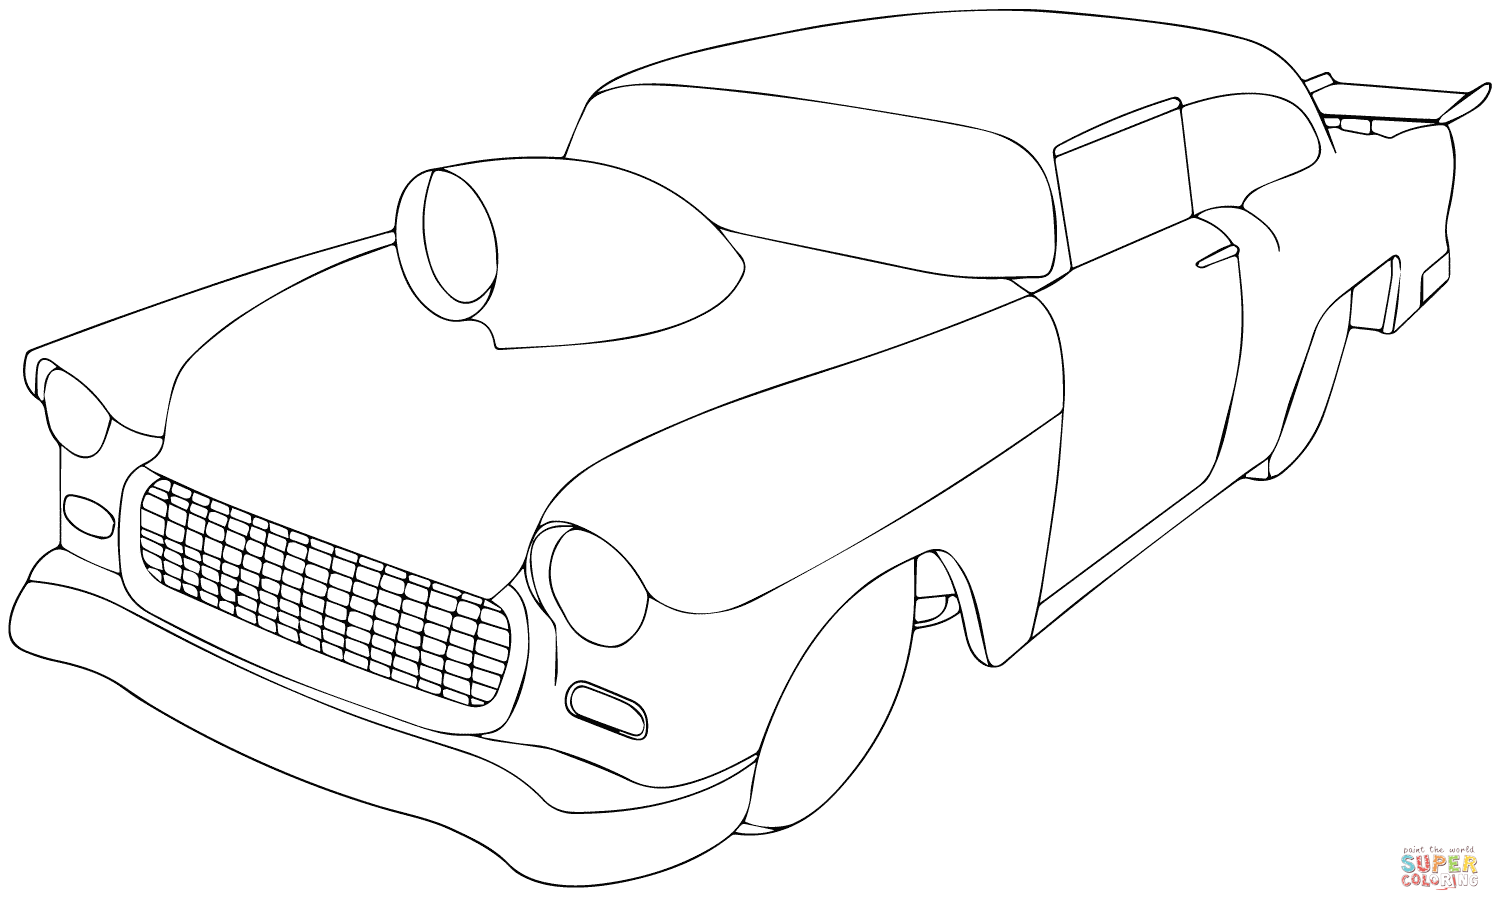 Chevy Camaro Drawing At Free For Personal Use 1957 Truck Clip 68